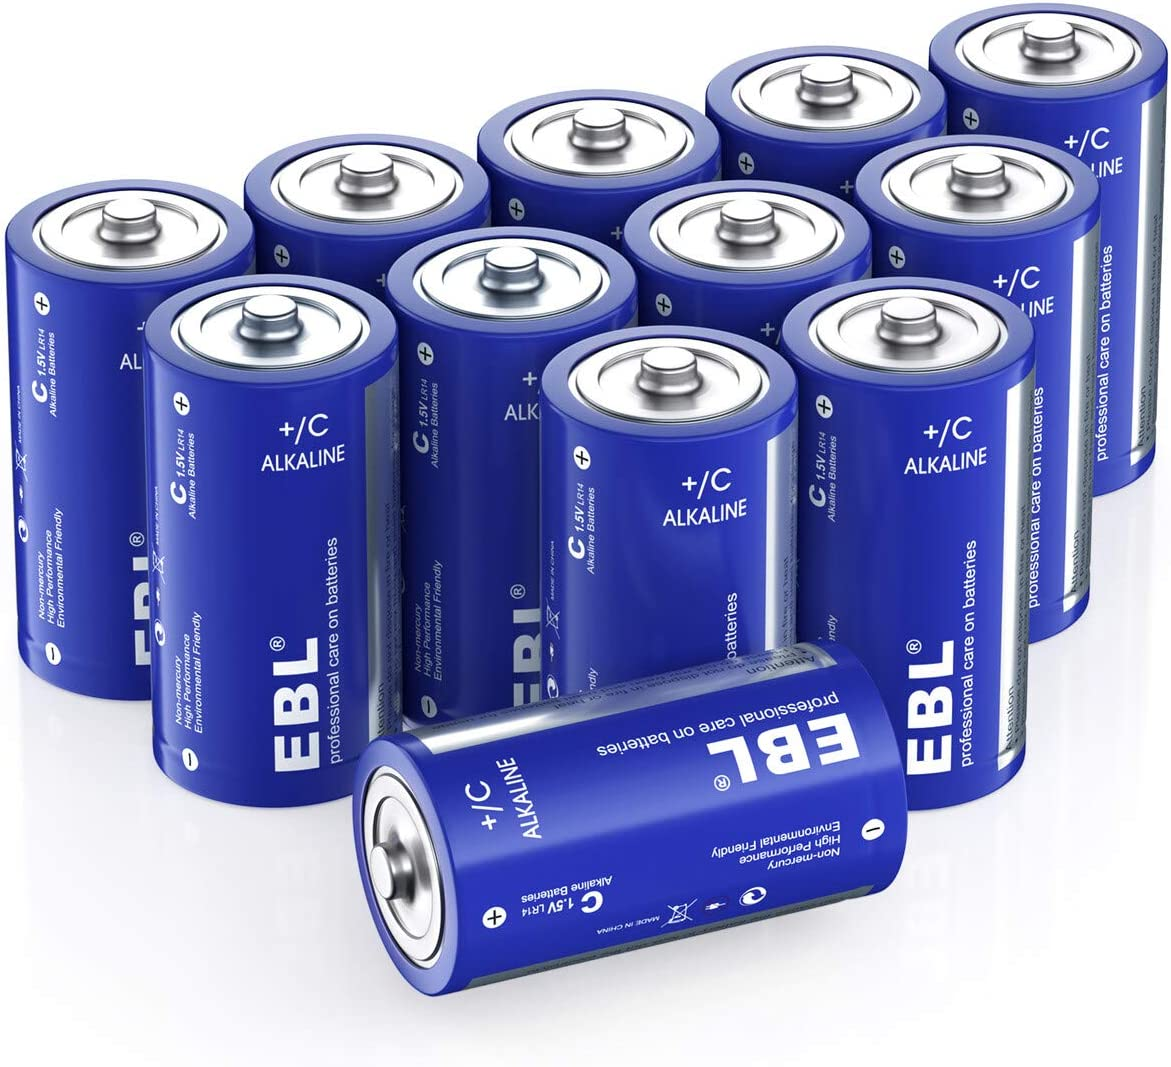 Long Lasting Performance Alkaline C Cell Batteries for Household and Business 12 Count EBL C Batteries